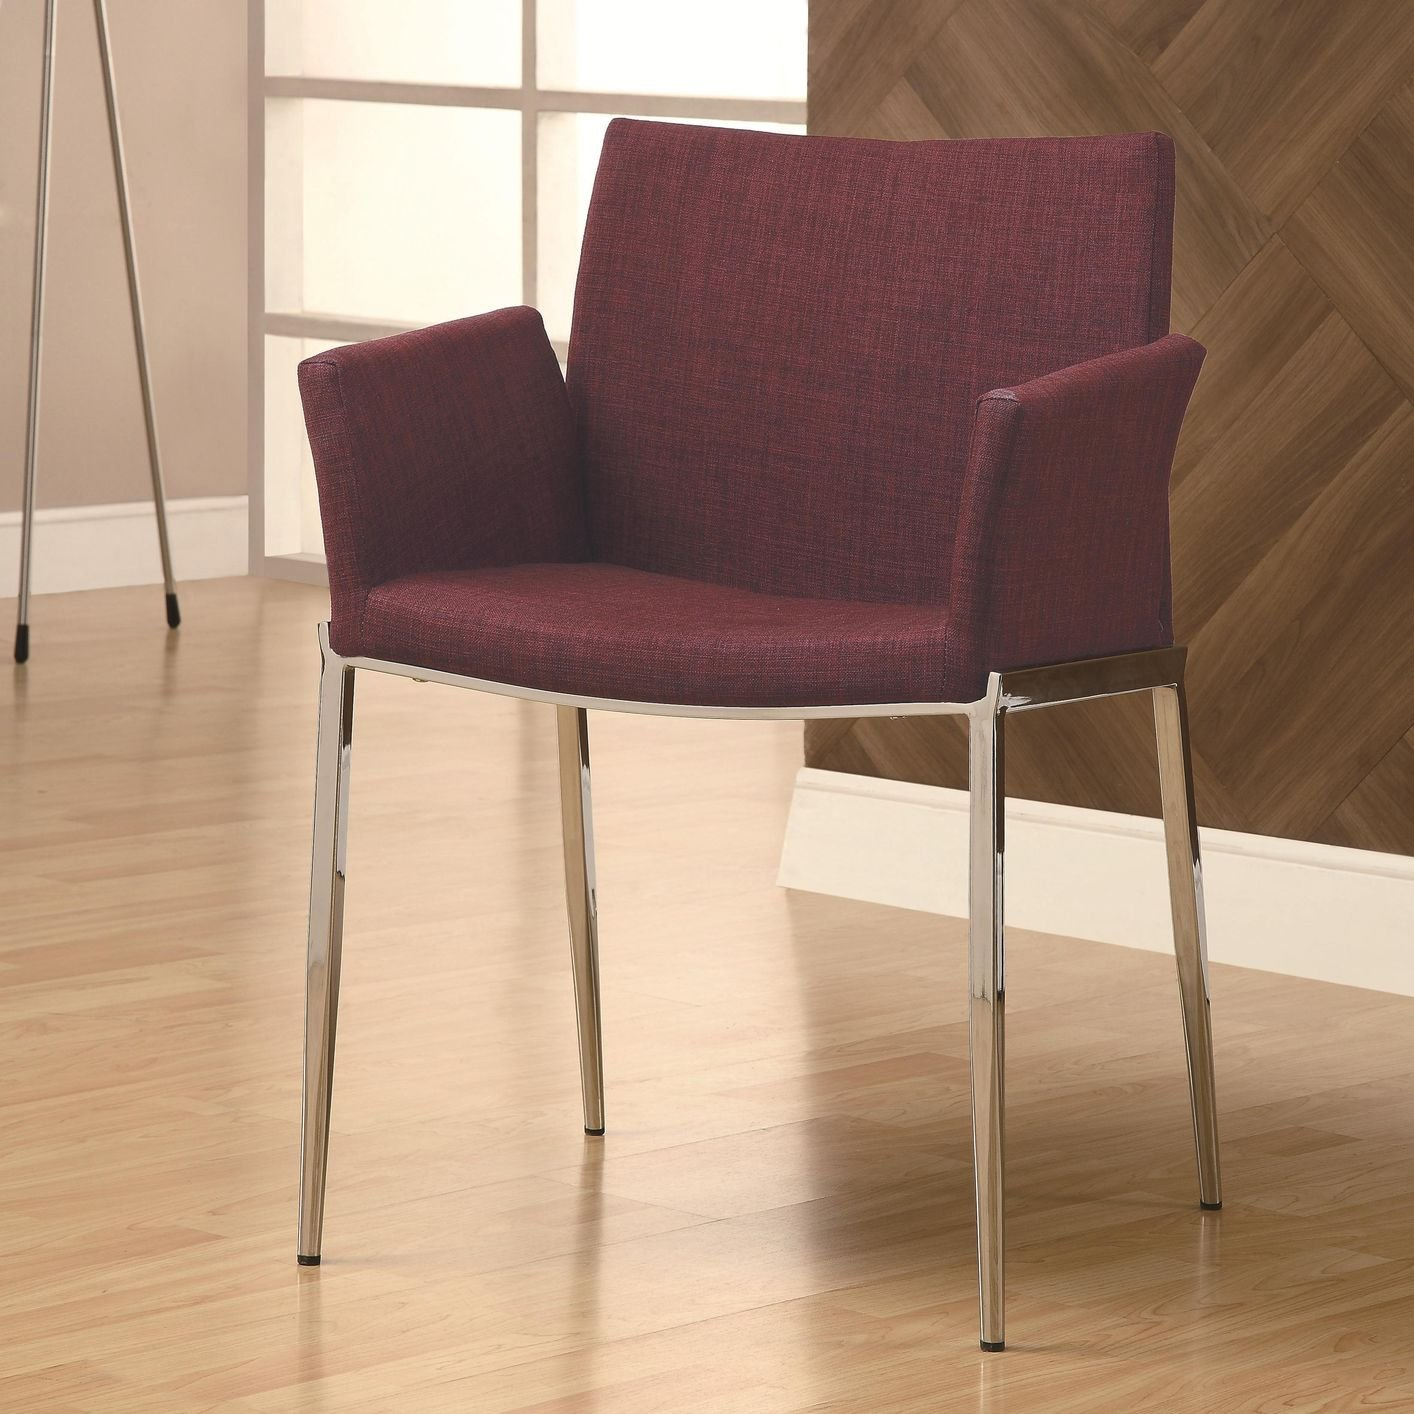 Red Fabric Dining Chair Steal A Sofa Furniture Outlet Los Angeles CA